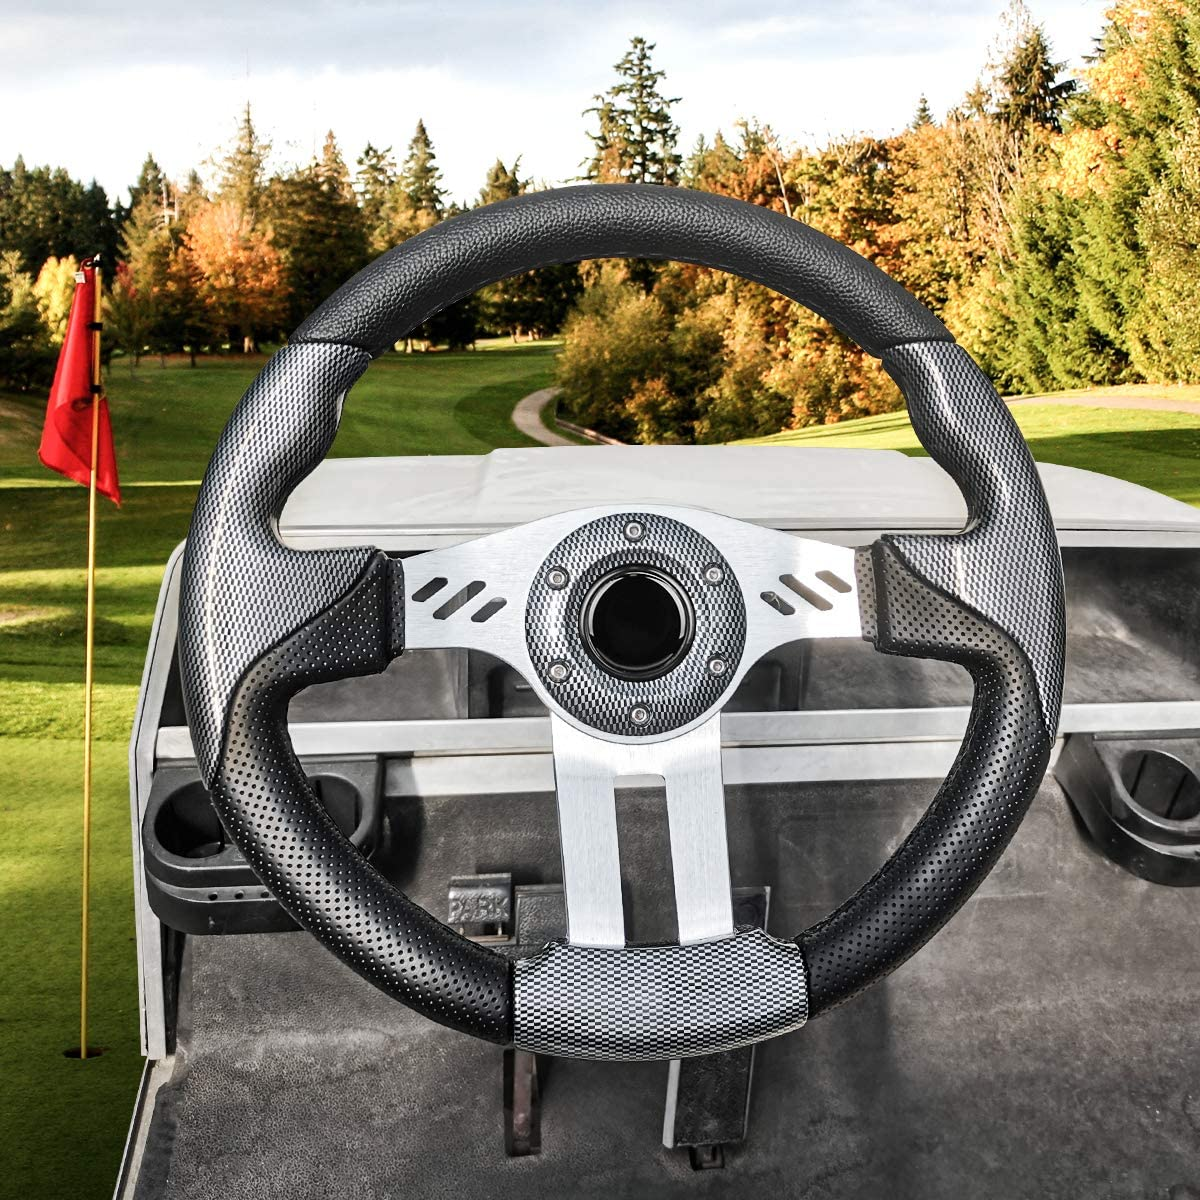 LEAPGO Golf Max 76% Popular brand OFF Cart Steering Wheel or Club Ca Adapter for